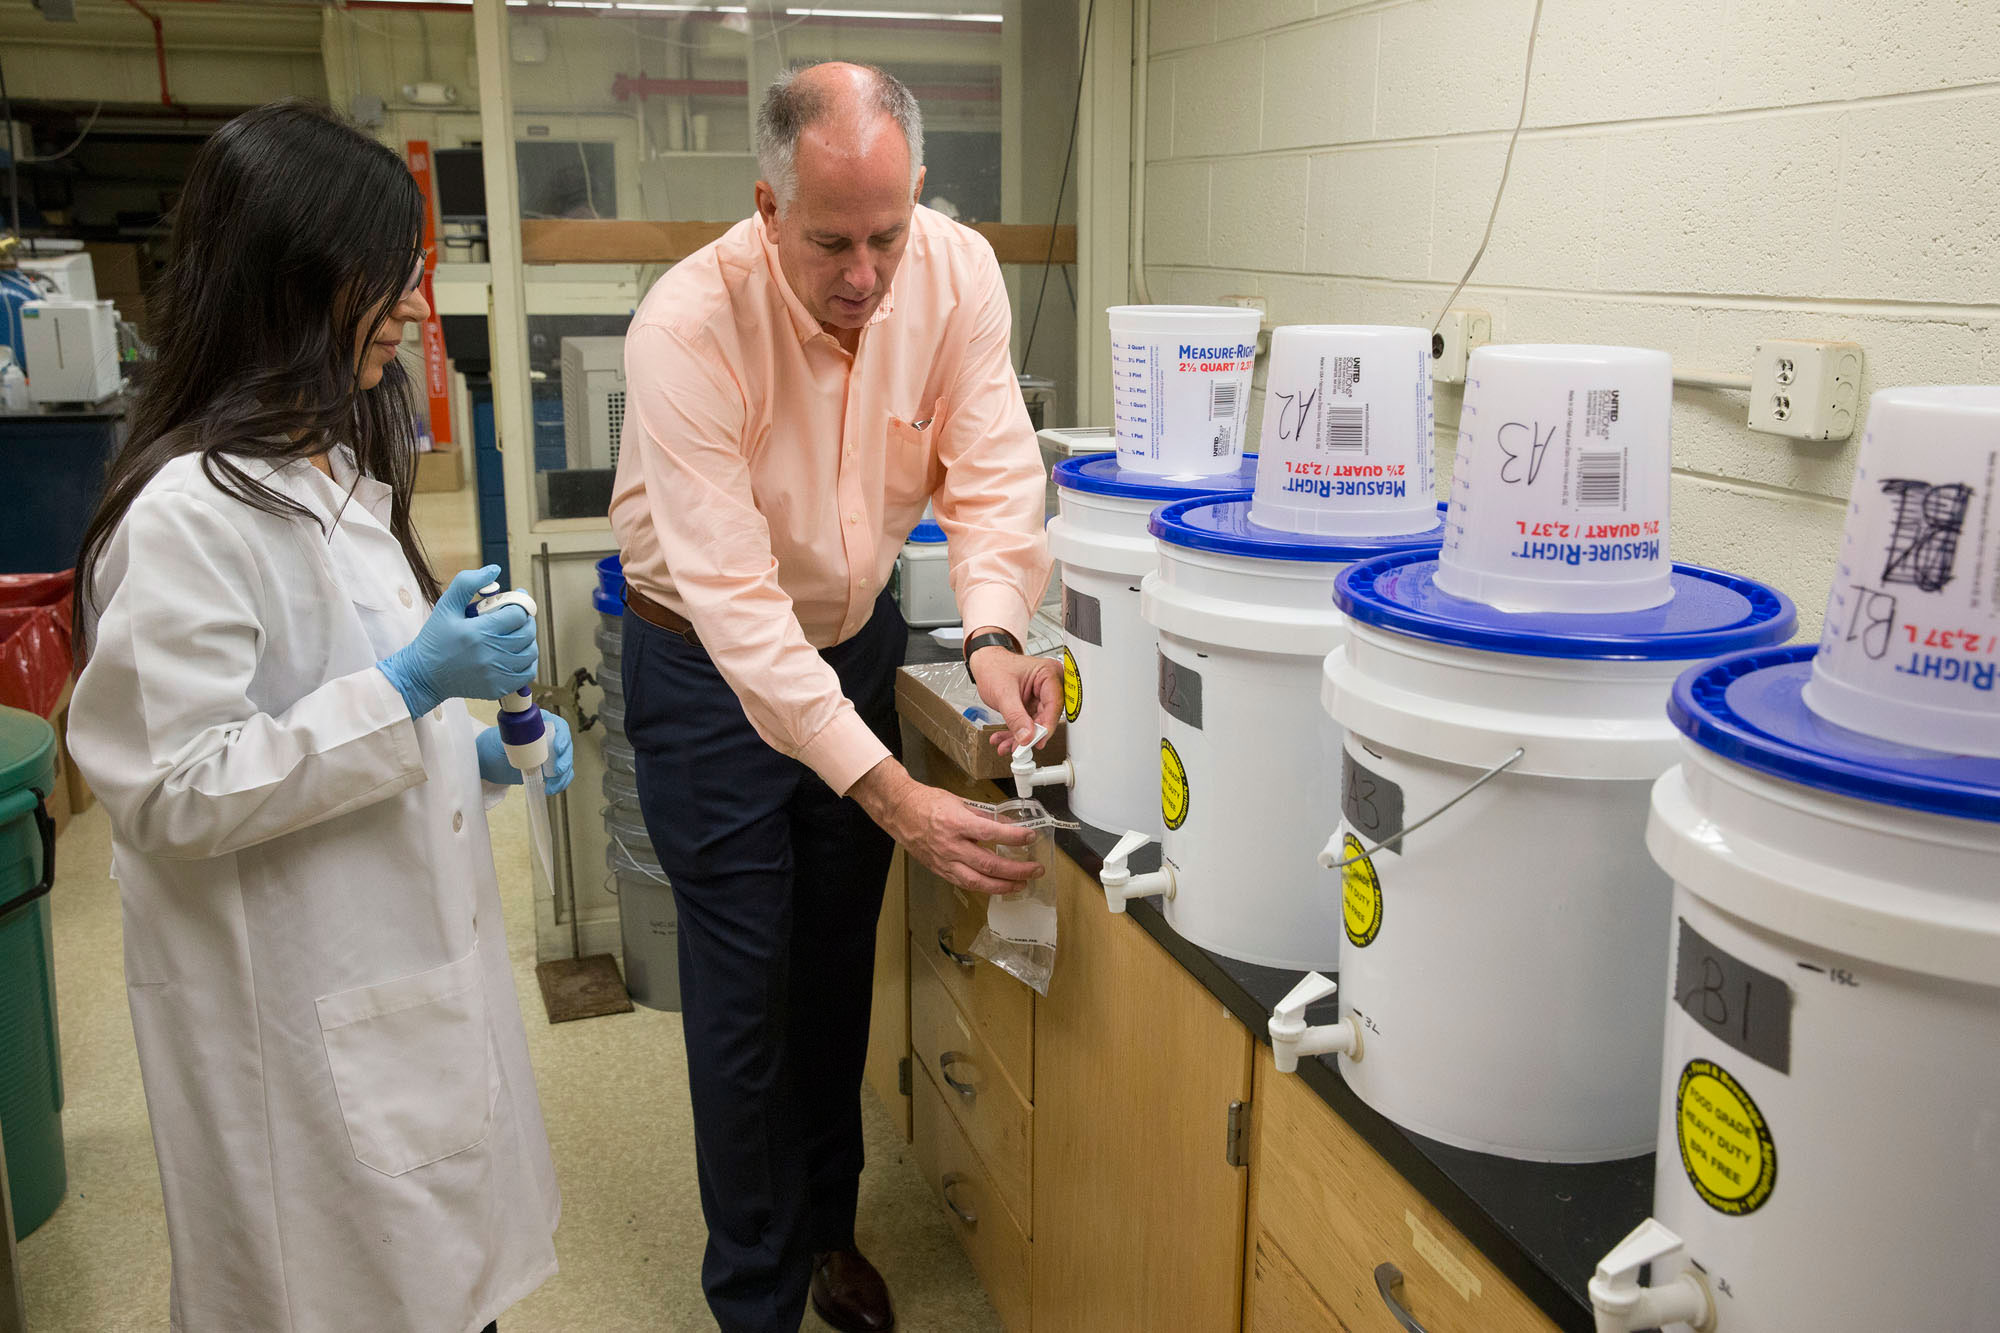 James Smith and Rekha Singh, a research scientist in Smith's lab, demonstrate use of the MadiDrop tablet.